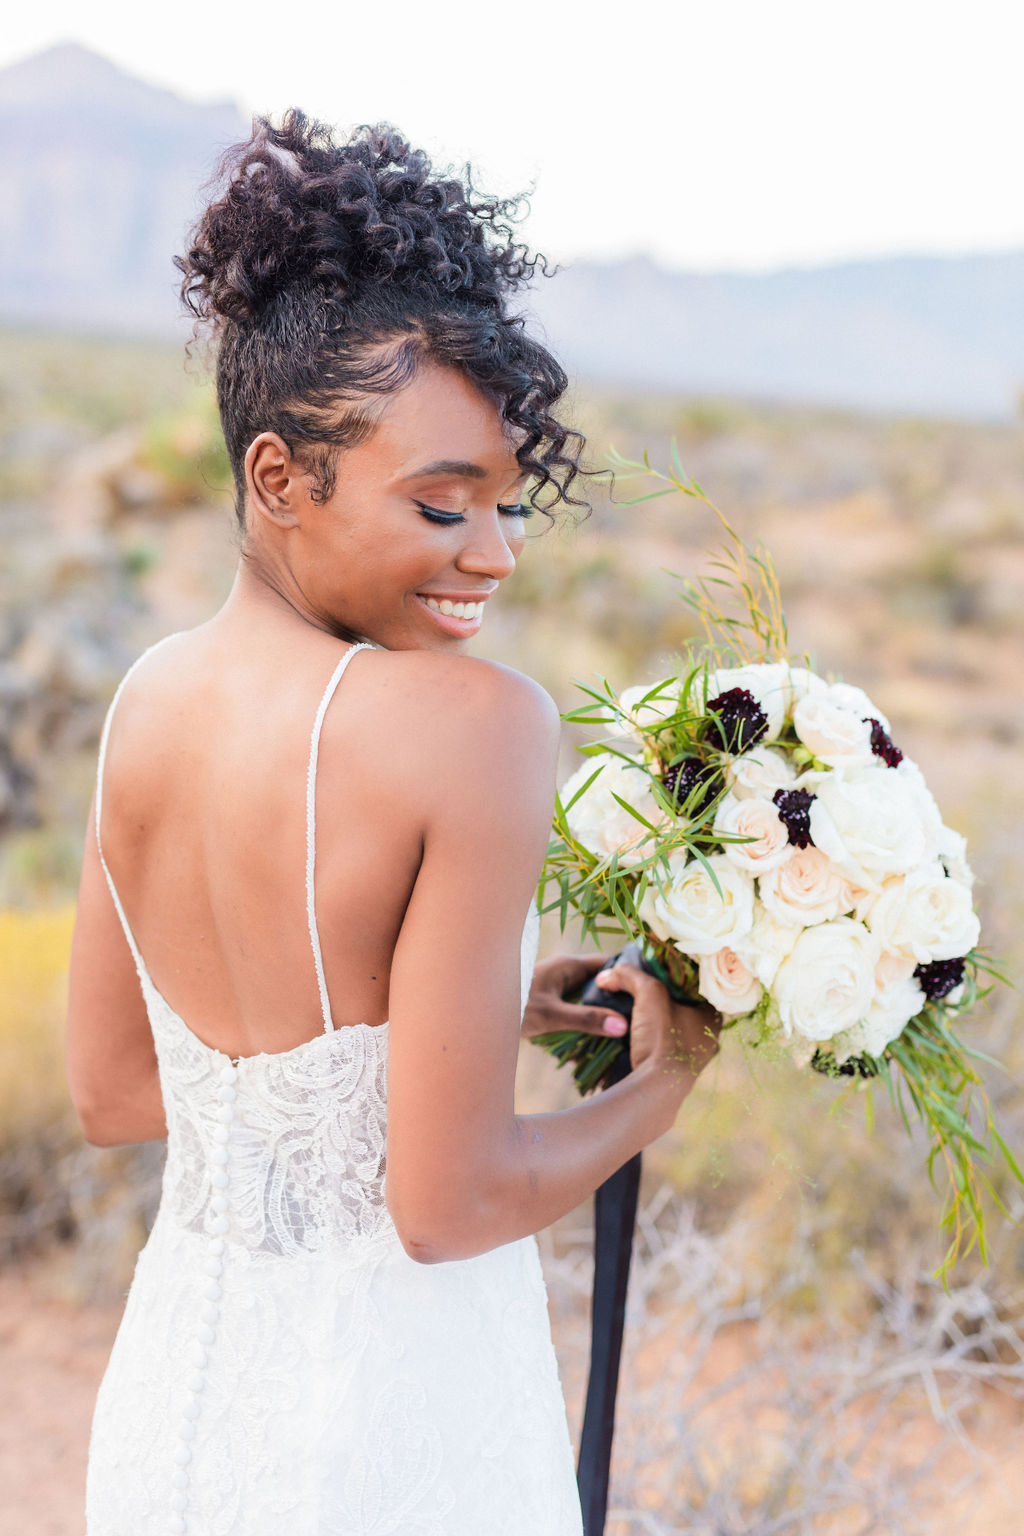 Natural Bridal Makeup Curly Hair Wedding Inspo Black And White Elizabeth Burgi Photography 3